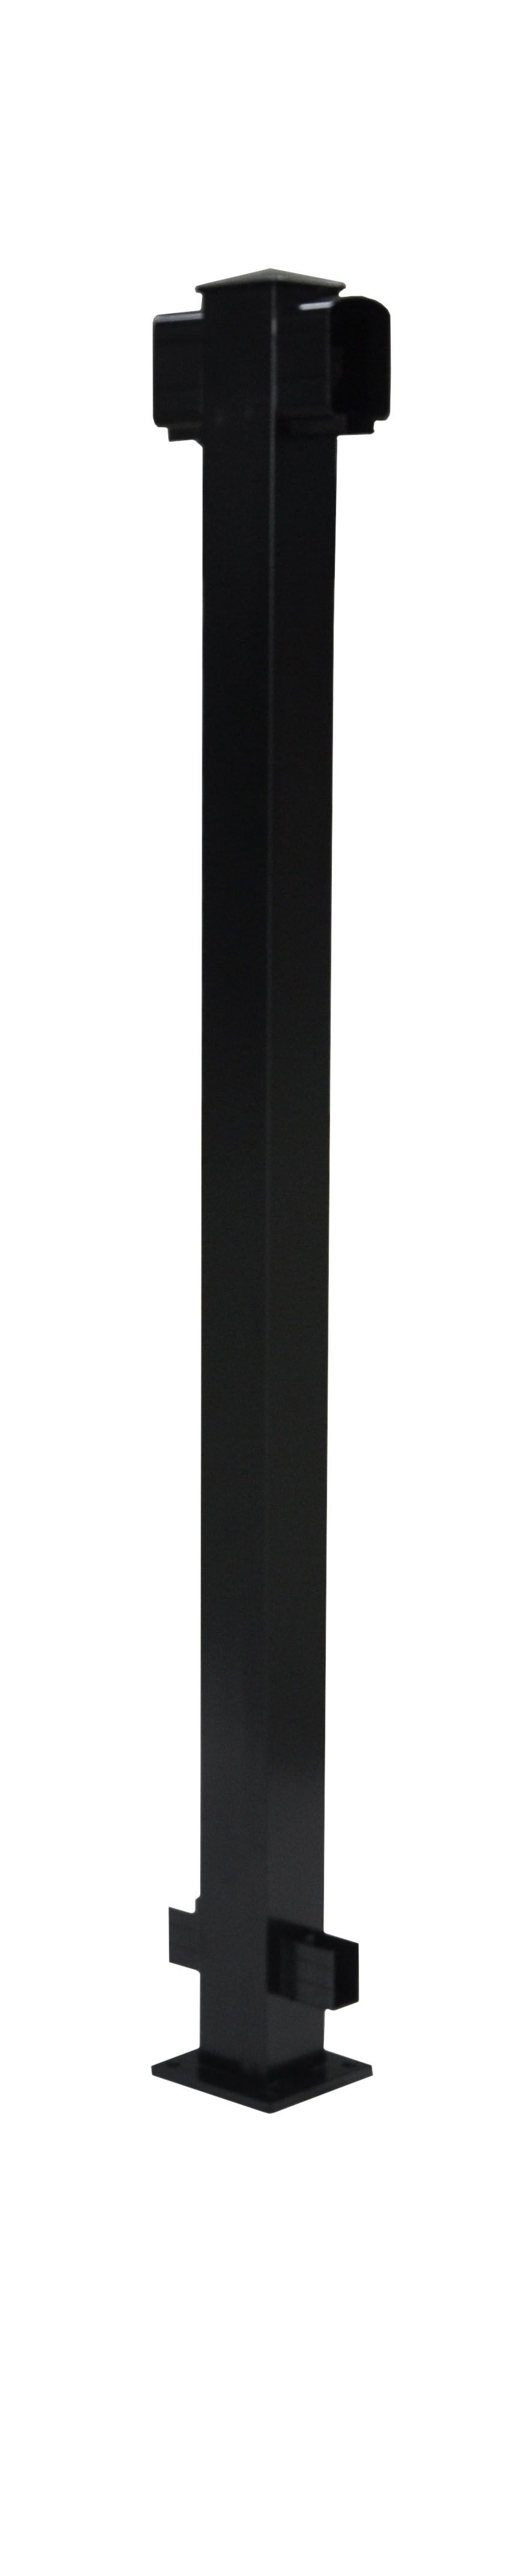 "Aluminum Fence Line Post 42"" - Black"